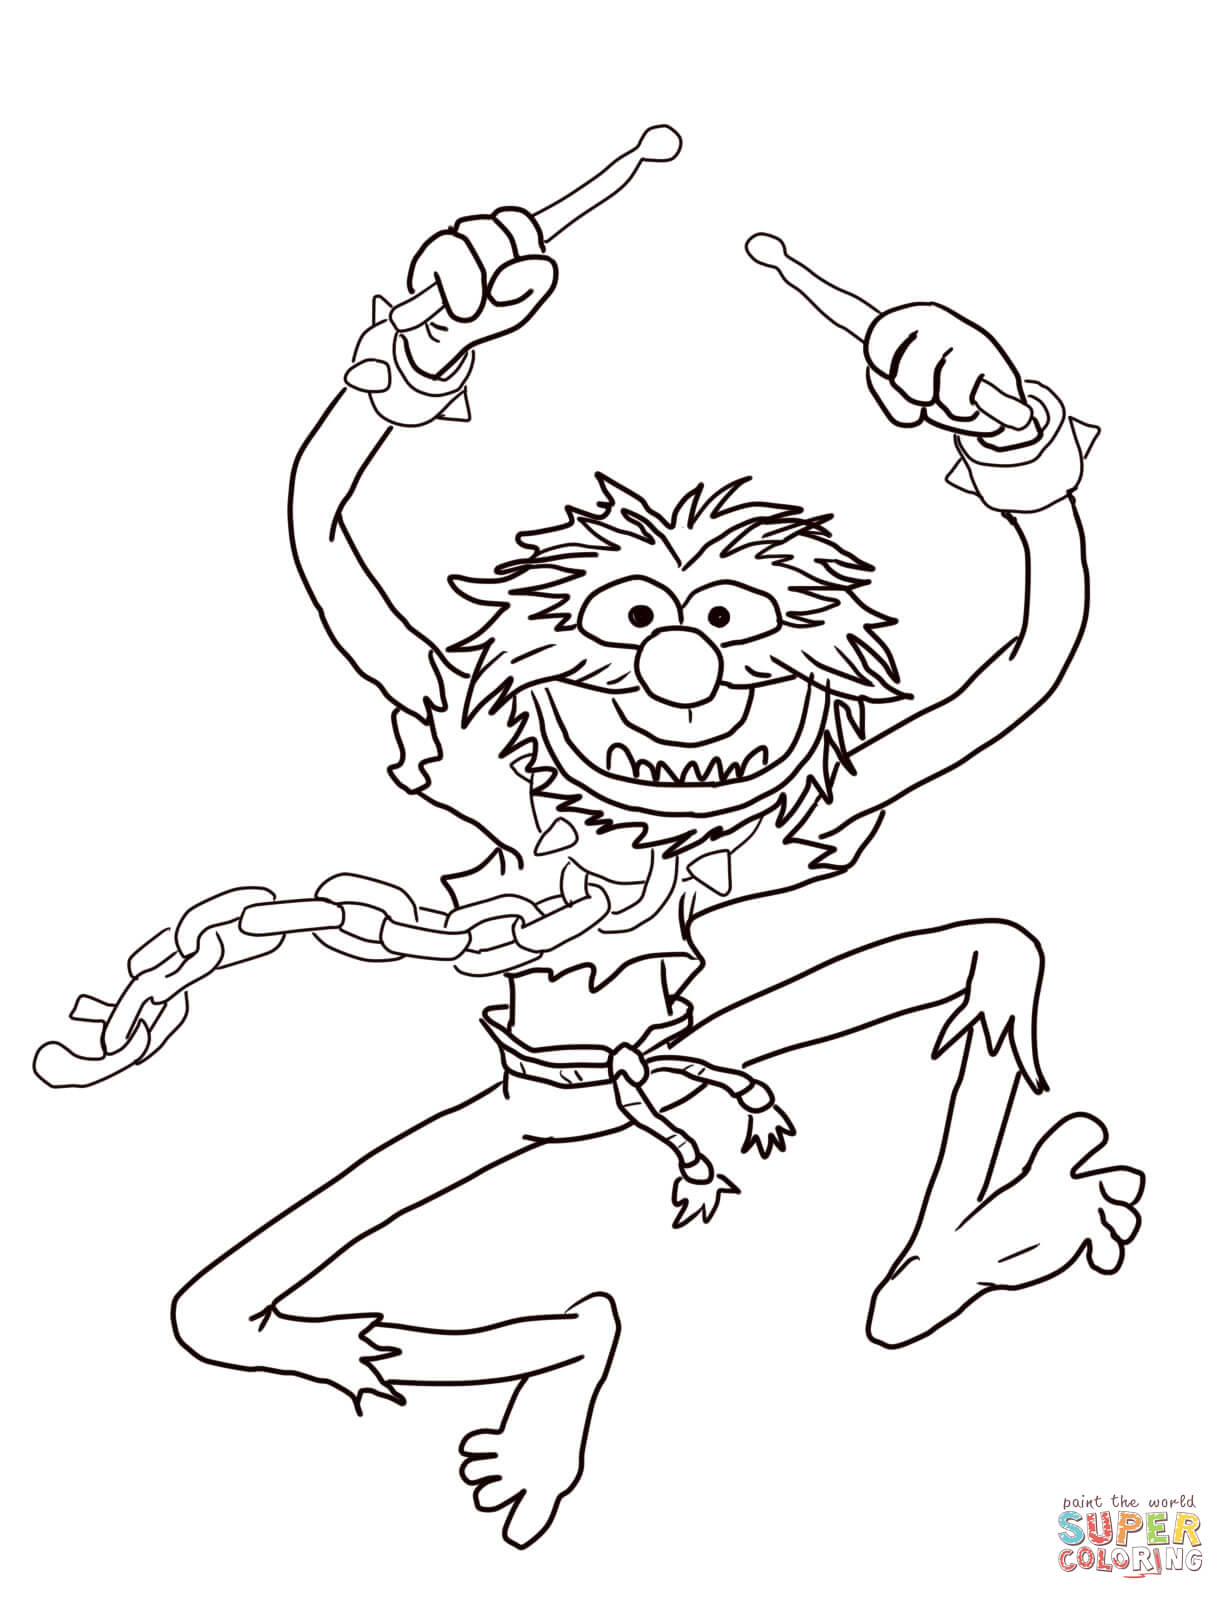 Muppets Animal With Drumsticks Coloring Page